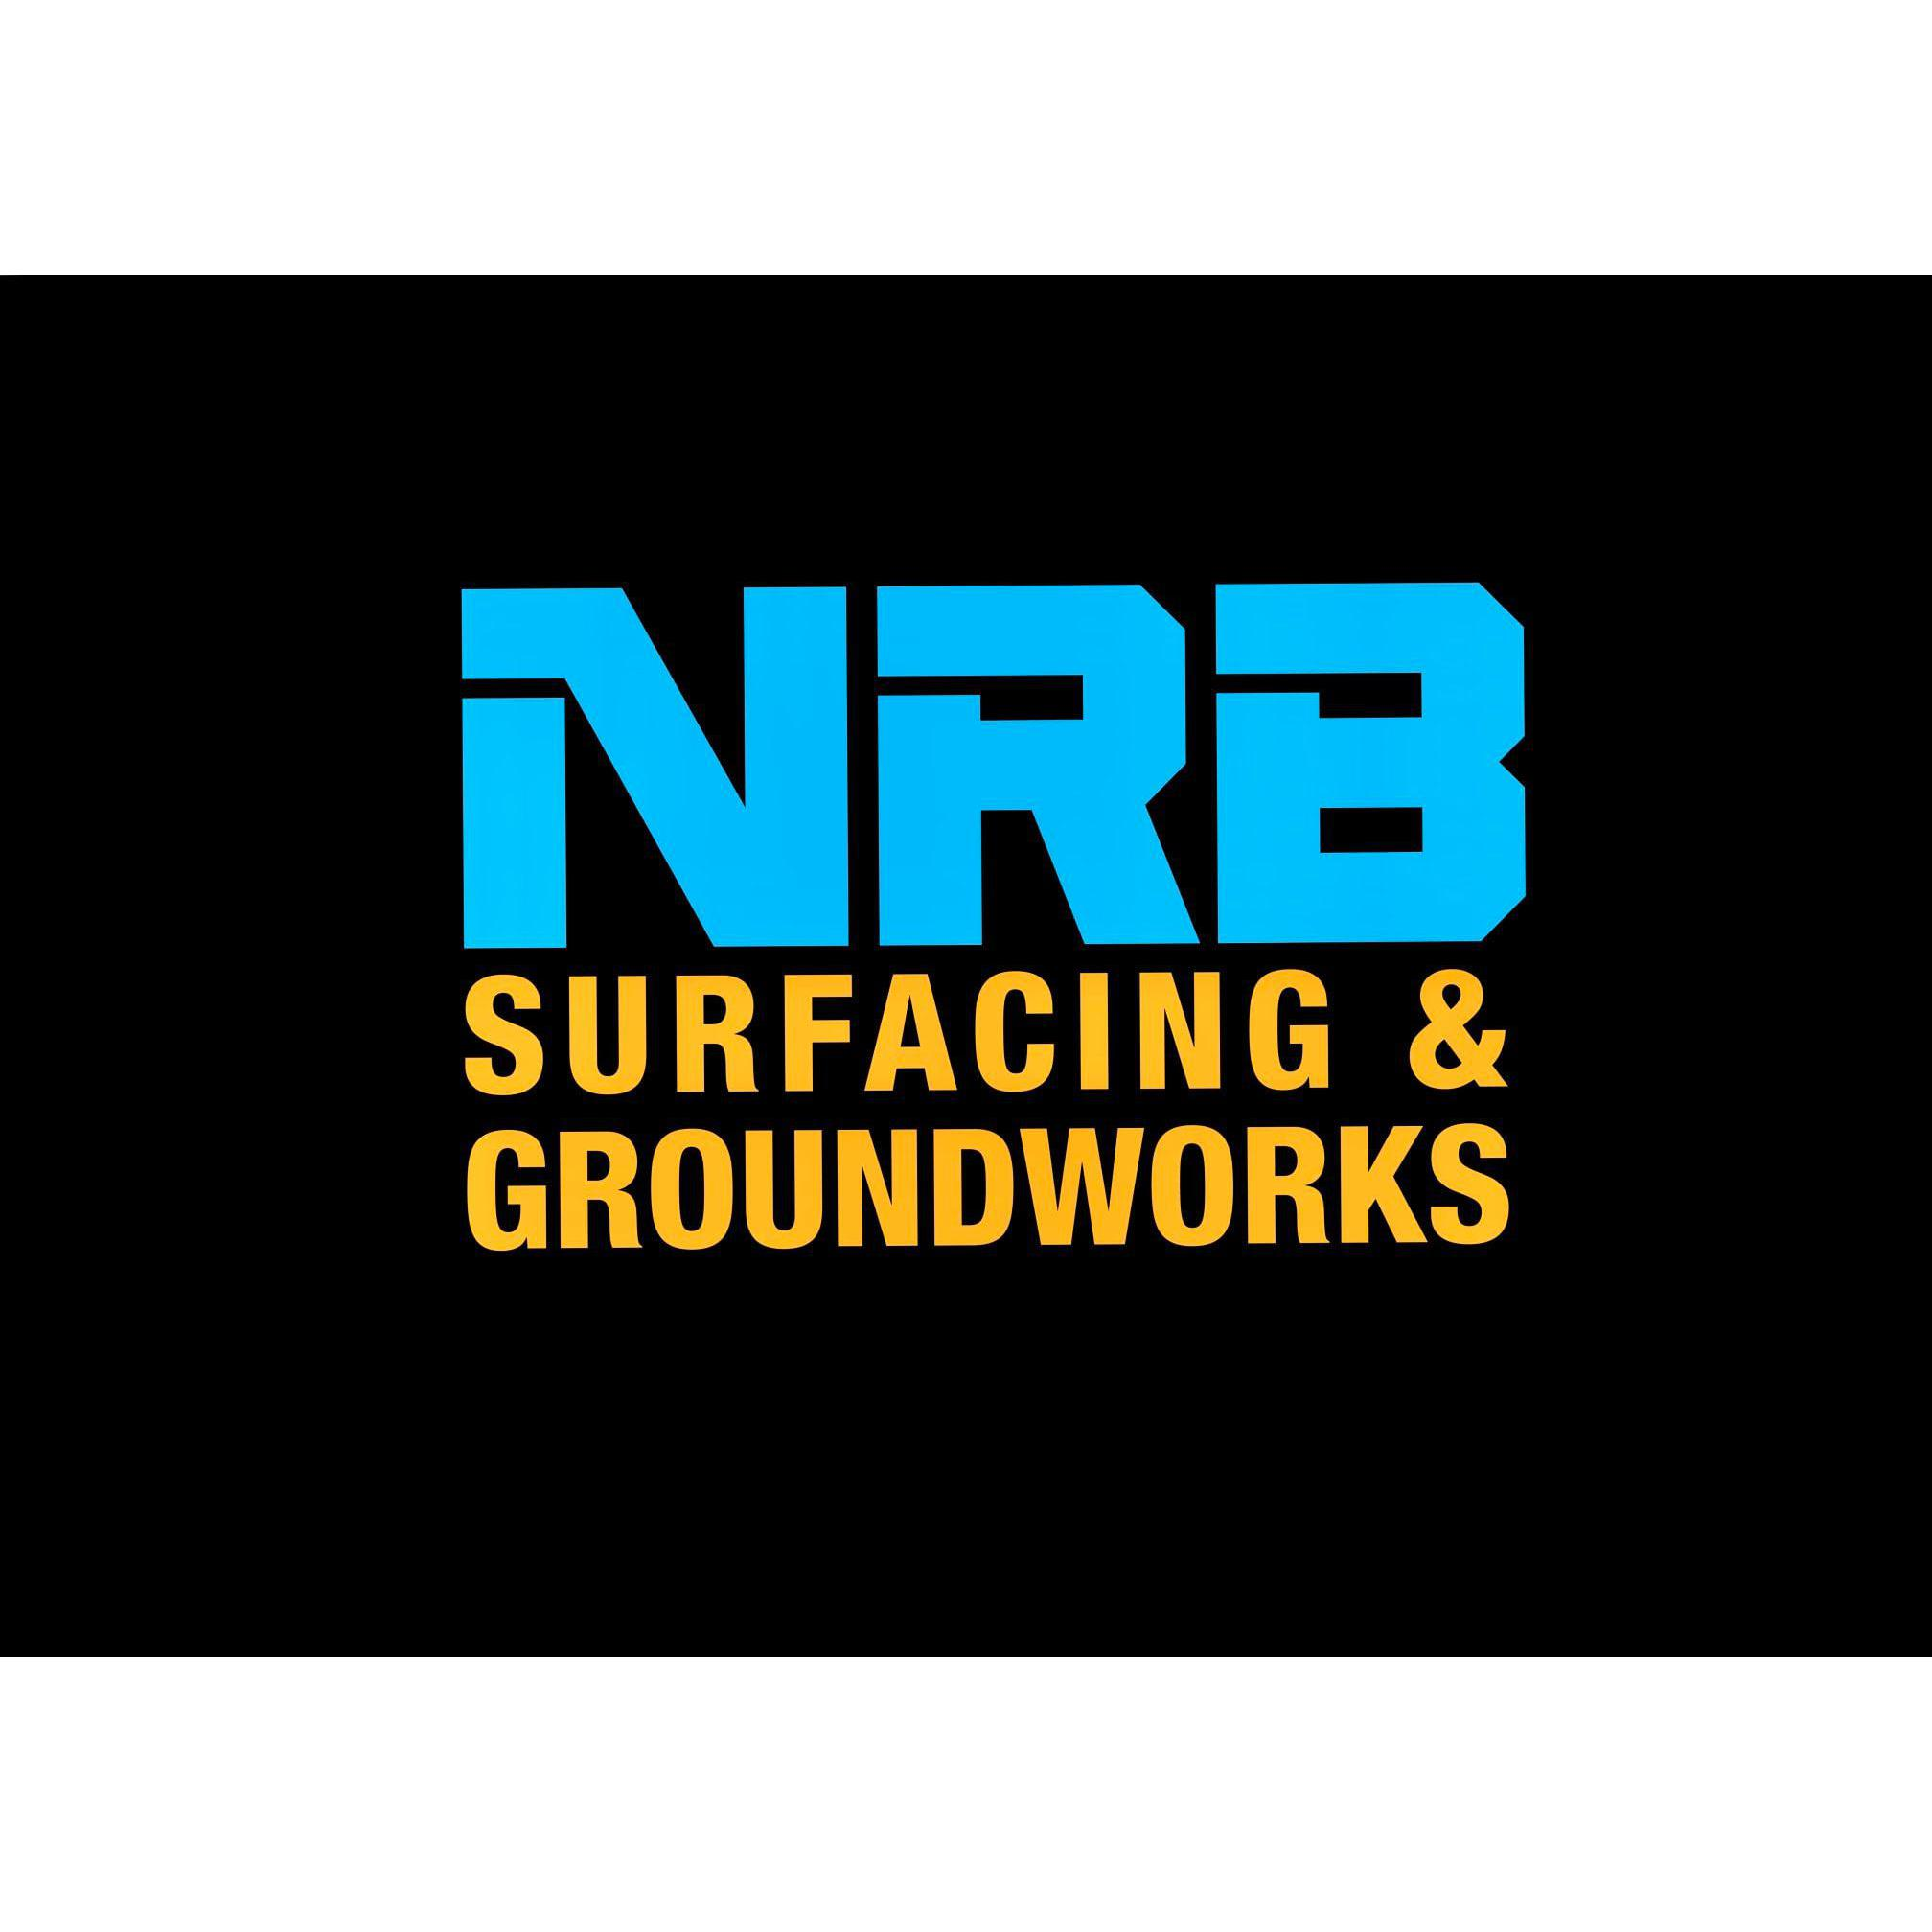 NRB Surfacing & Groundworks - Stoke-On-Trent, Staffordshire ST11 9NE - 07817 860432 | ShowMeLocal.com